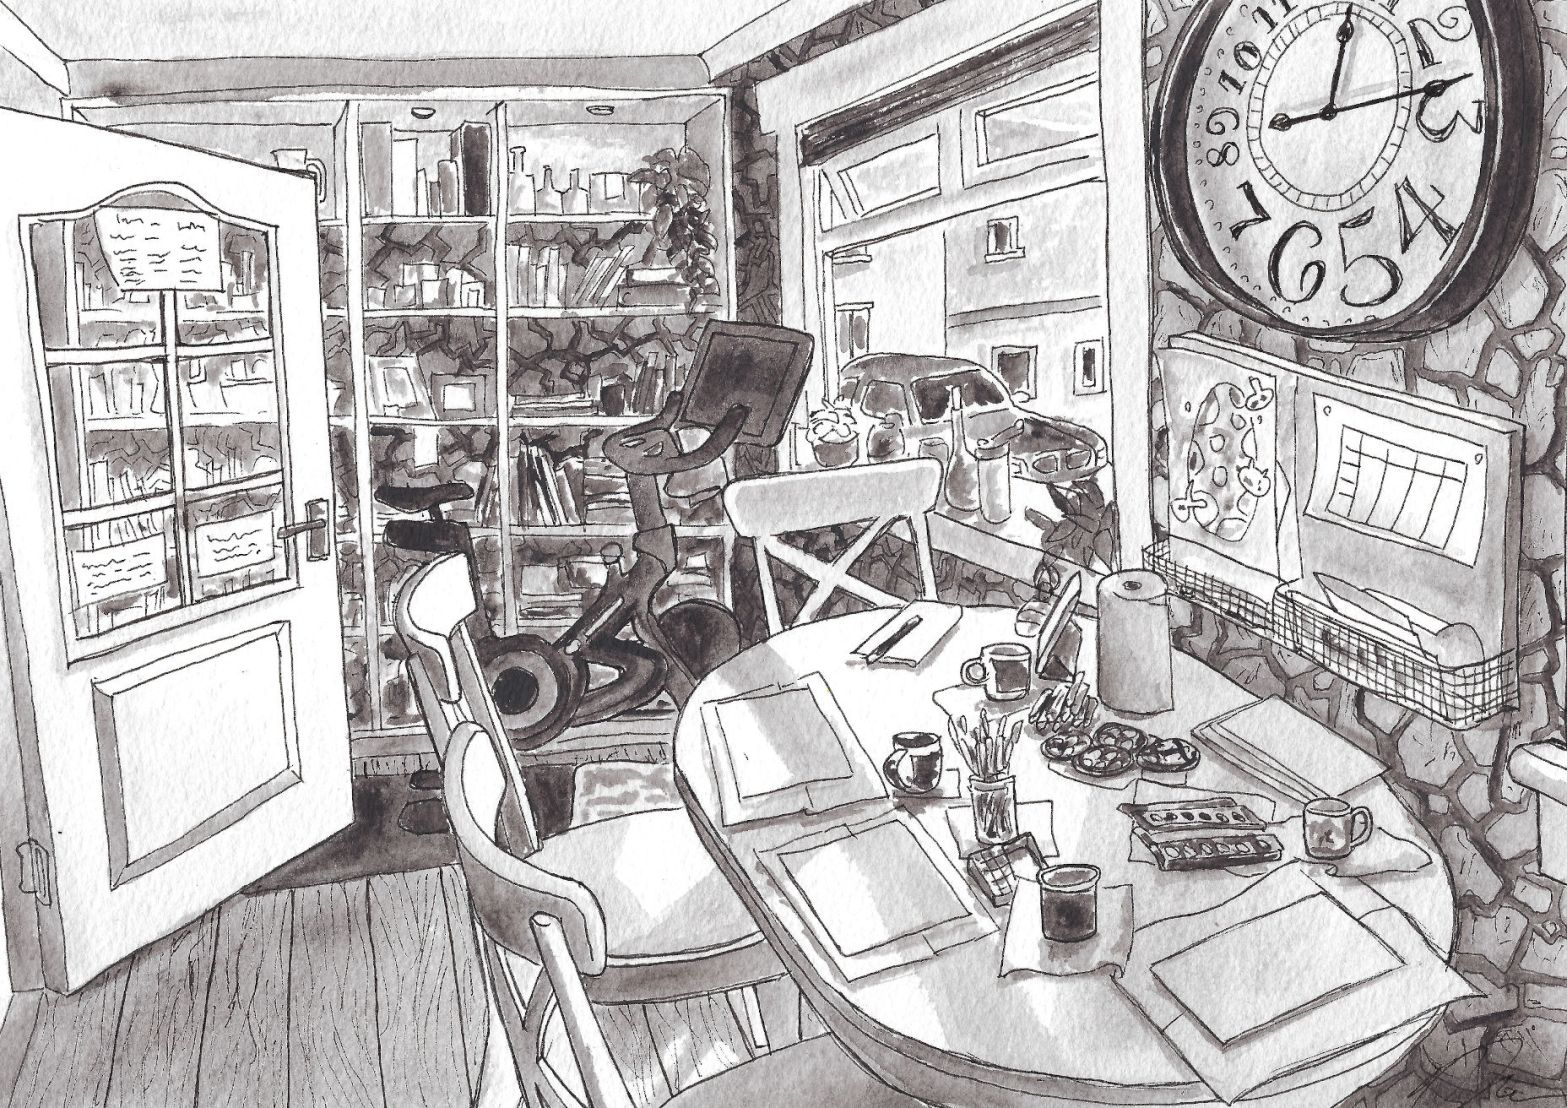 Illustration of dining room with cluttered table and bookshelves.